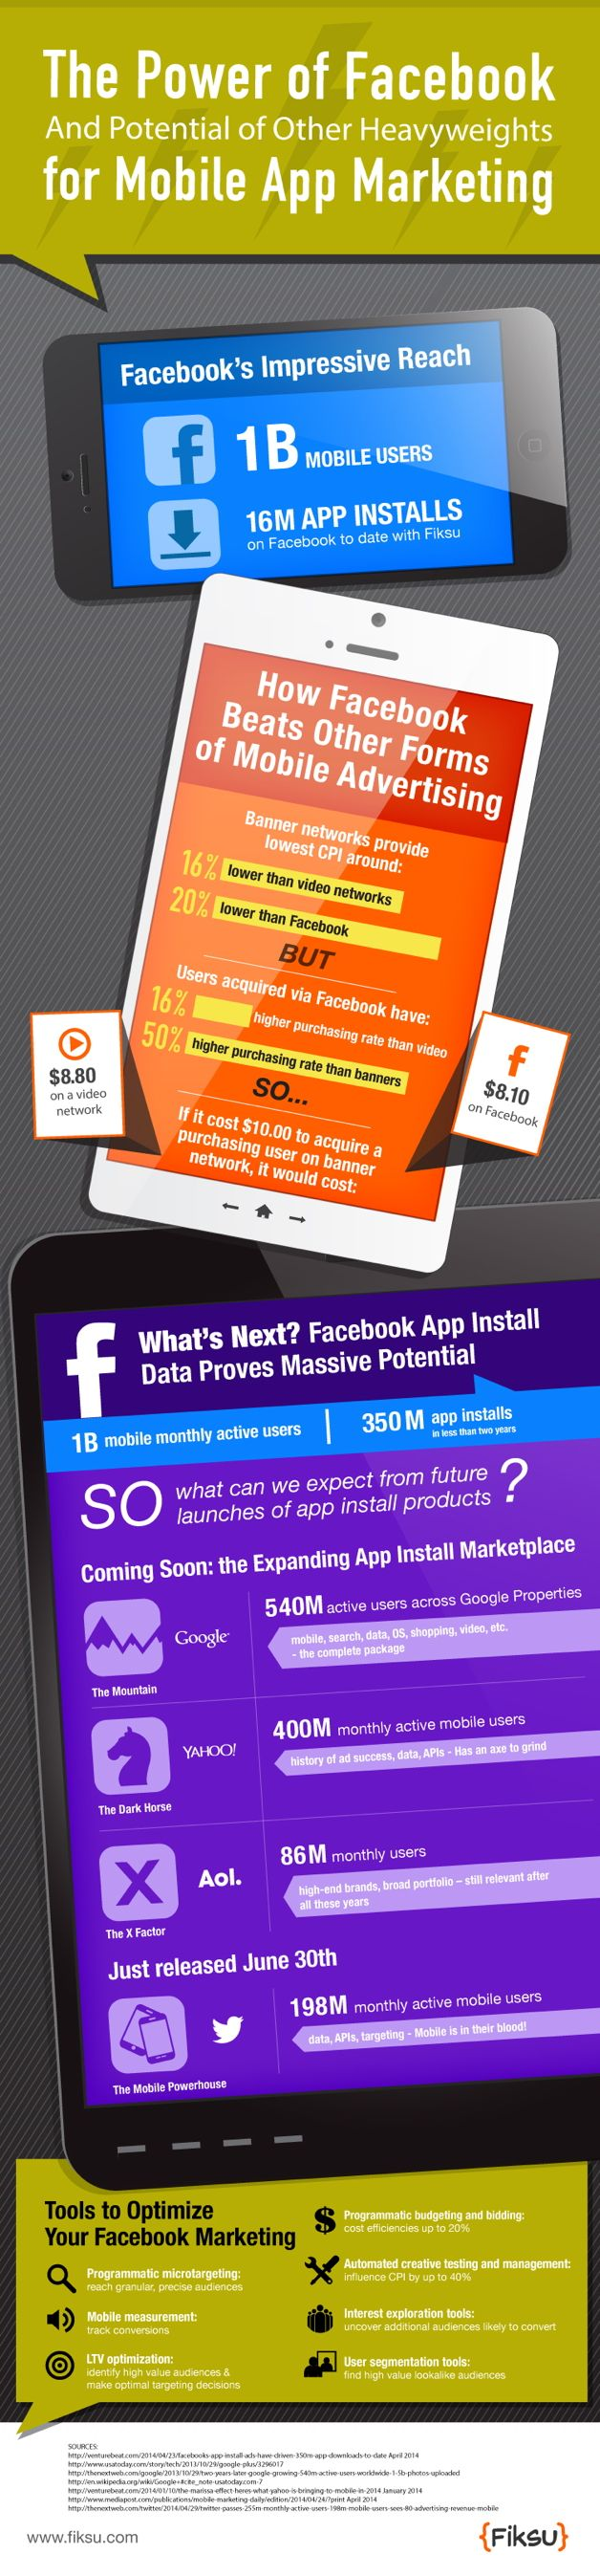 #Infographic: The Power of Facebook for #Mobile App #Marketing